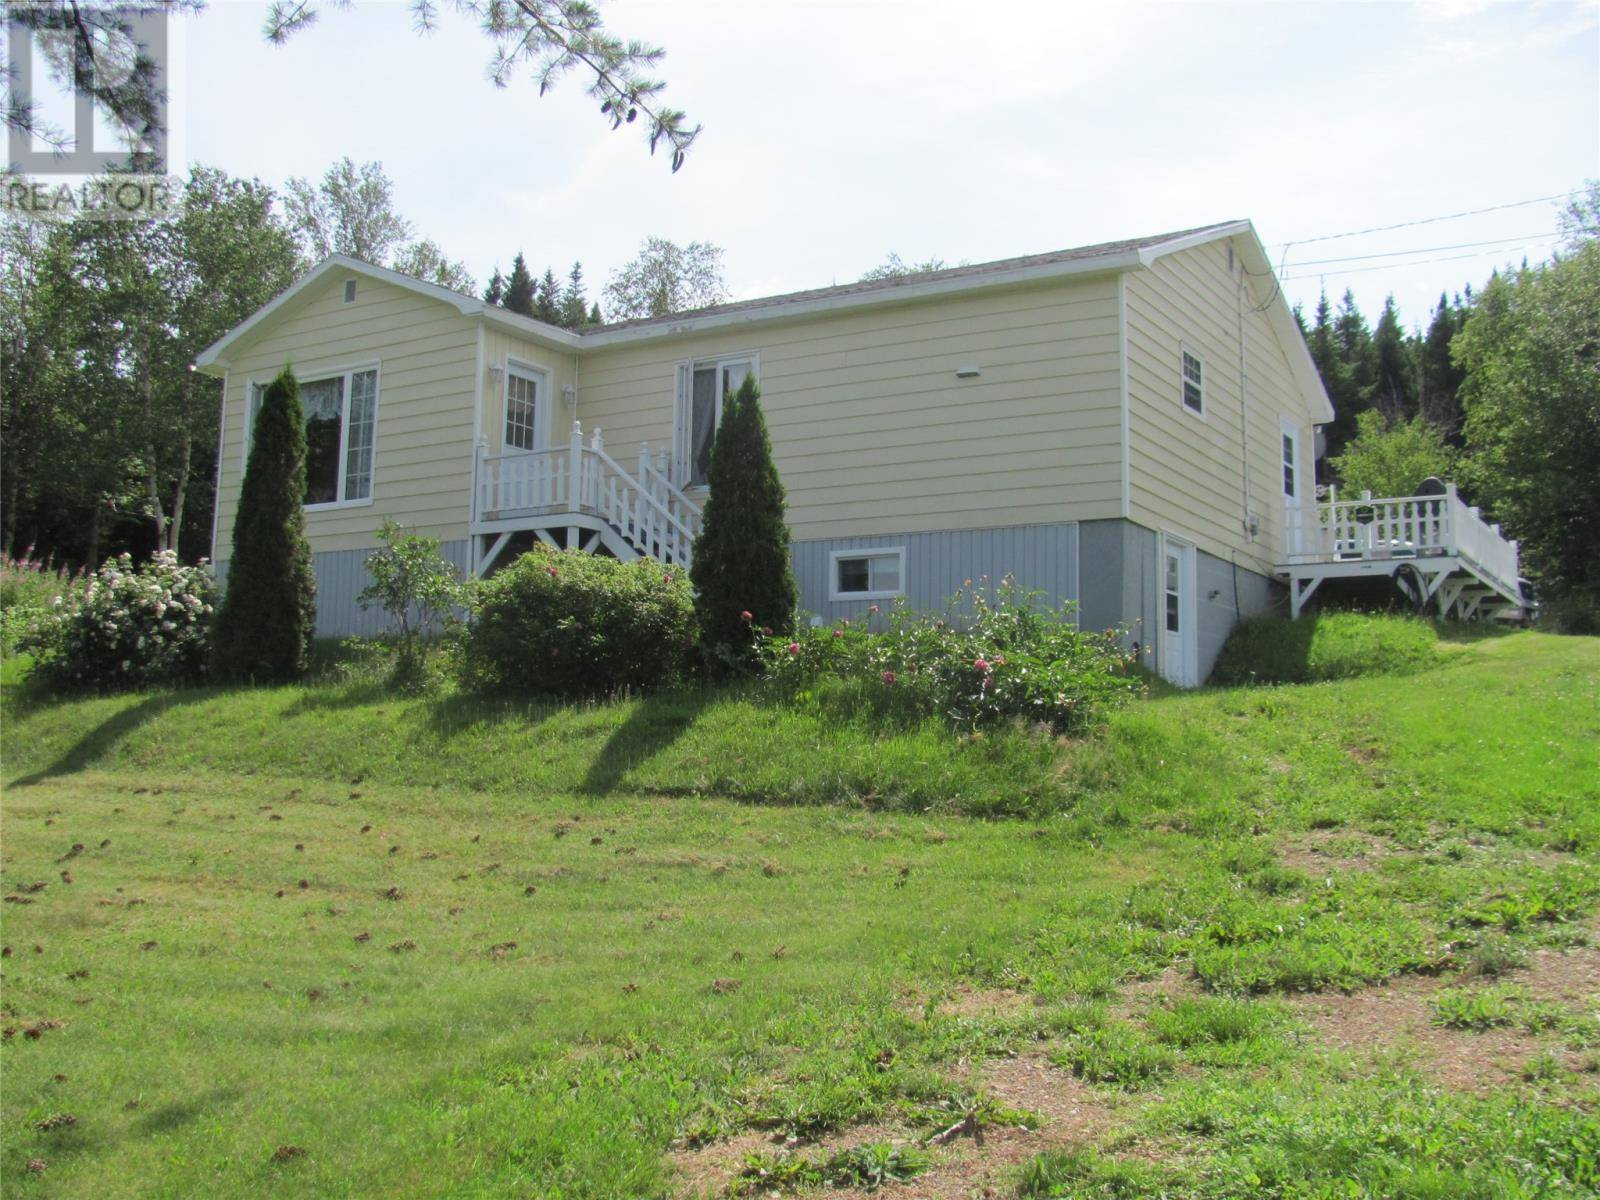 House for sale at 0 Long Toms Cove Rd Cannings Cove Newfoundland - MLS: 1202785